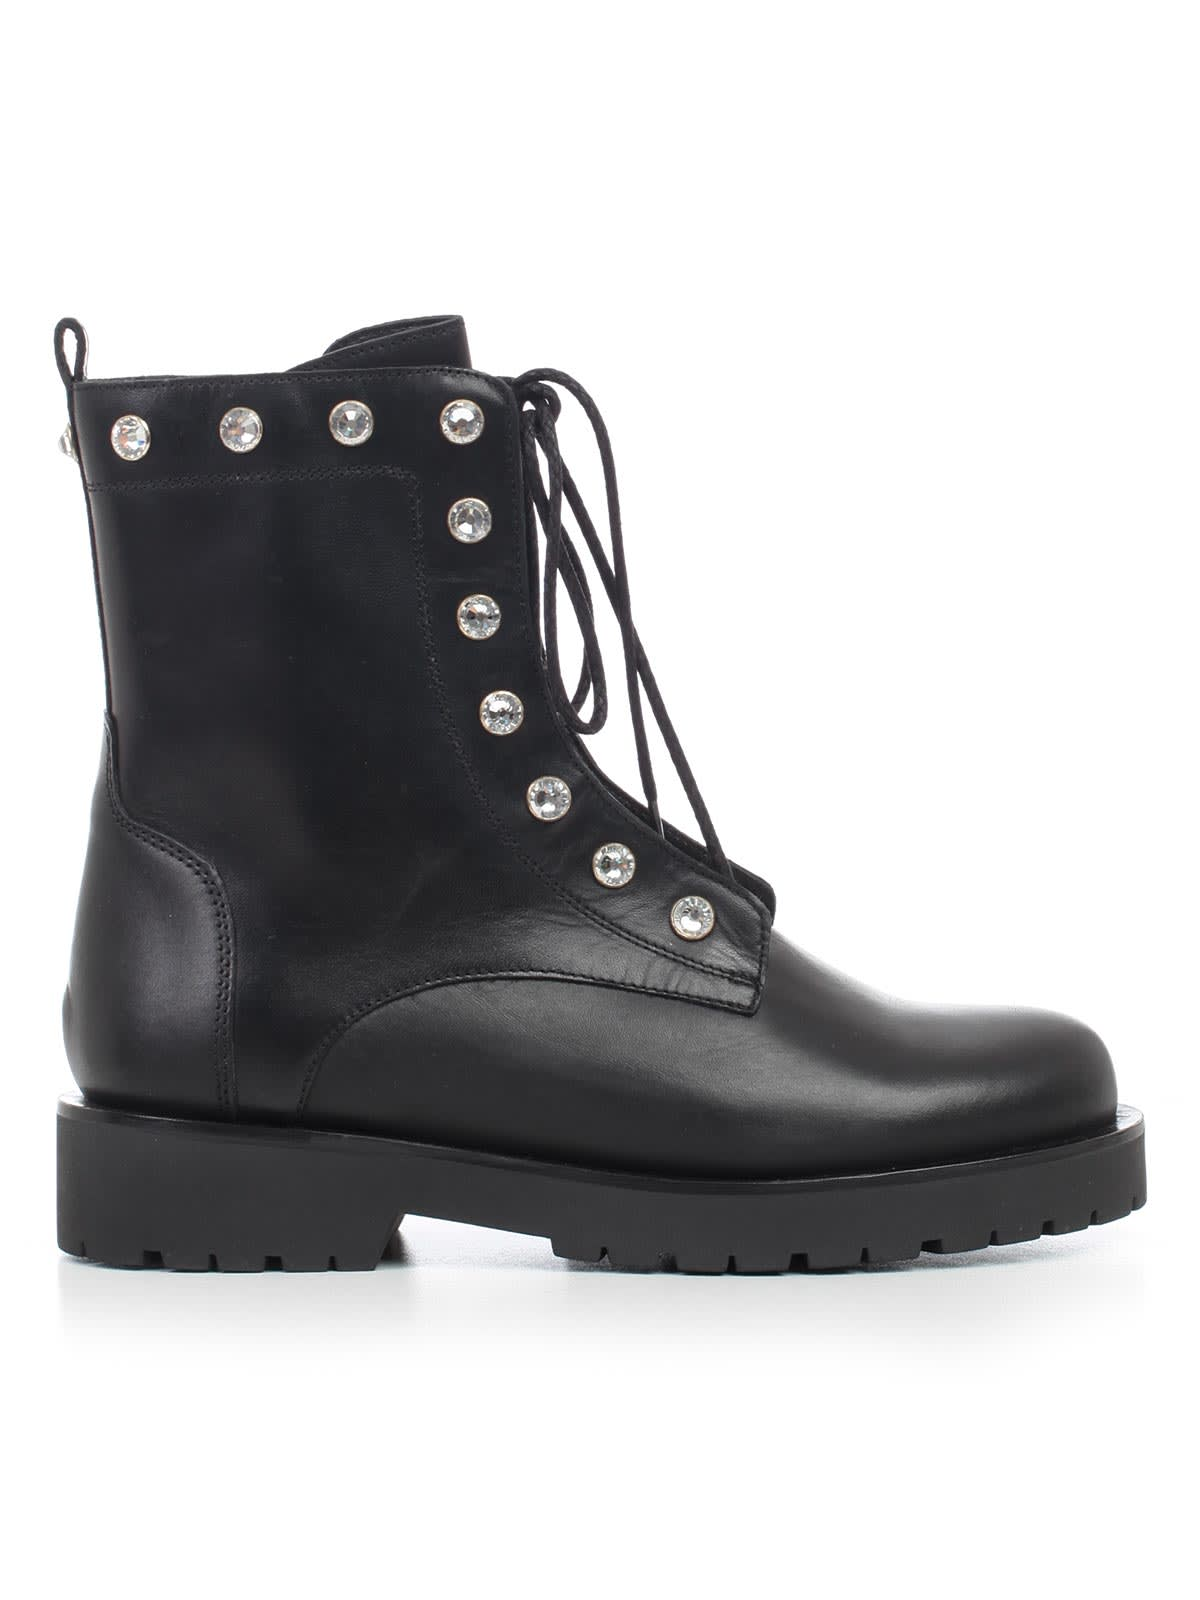 official photos 77402 8d24b TwinSet Ankle Boots W/studs